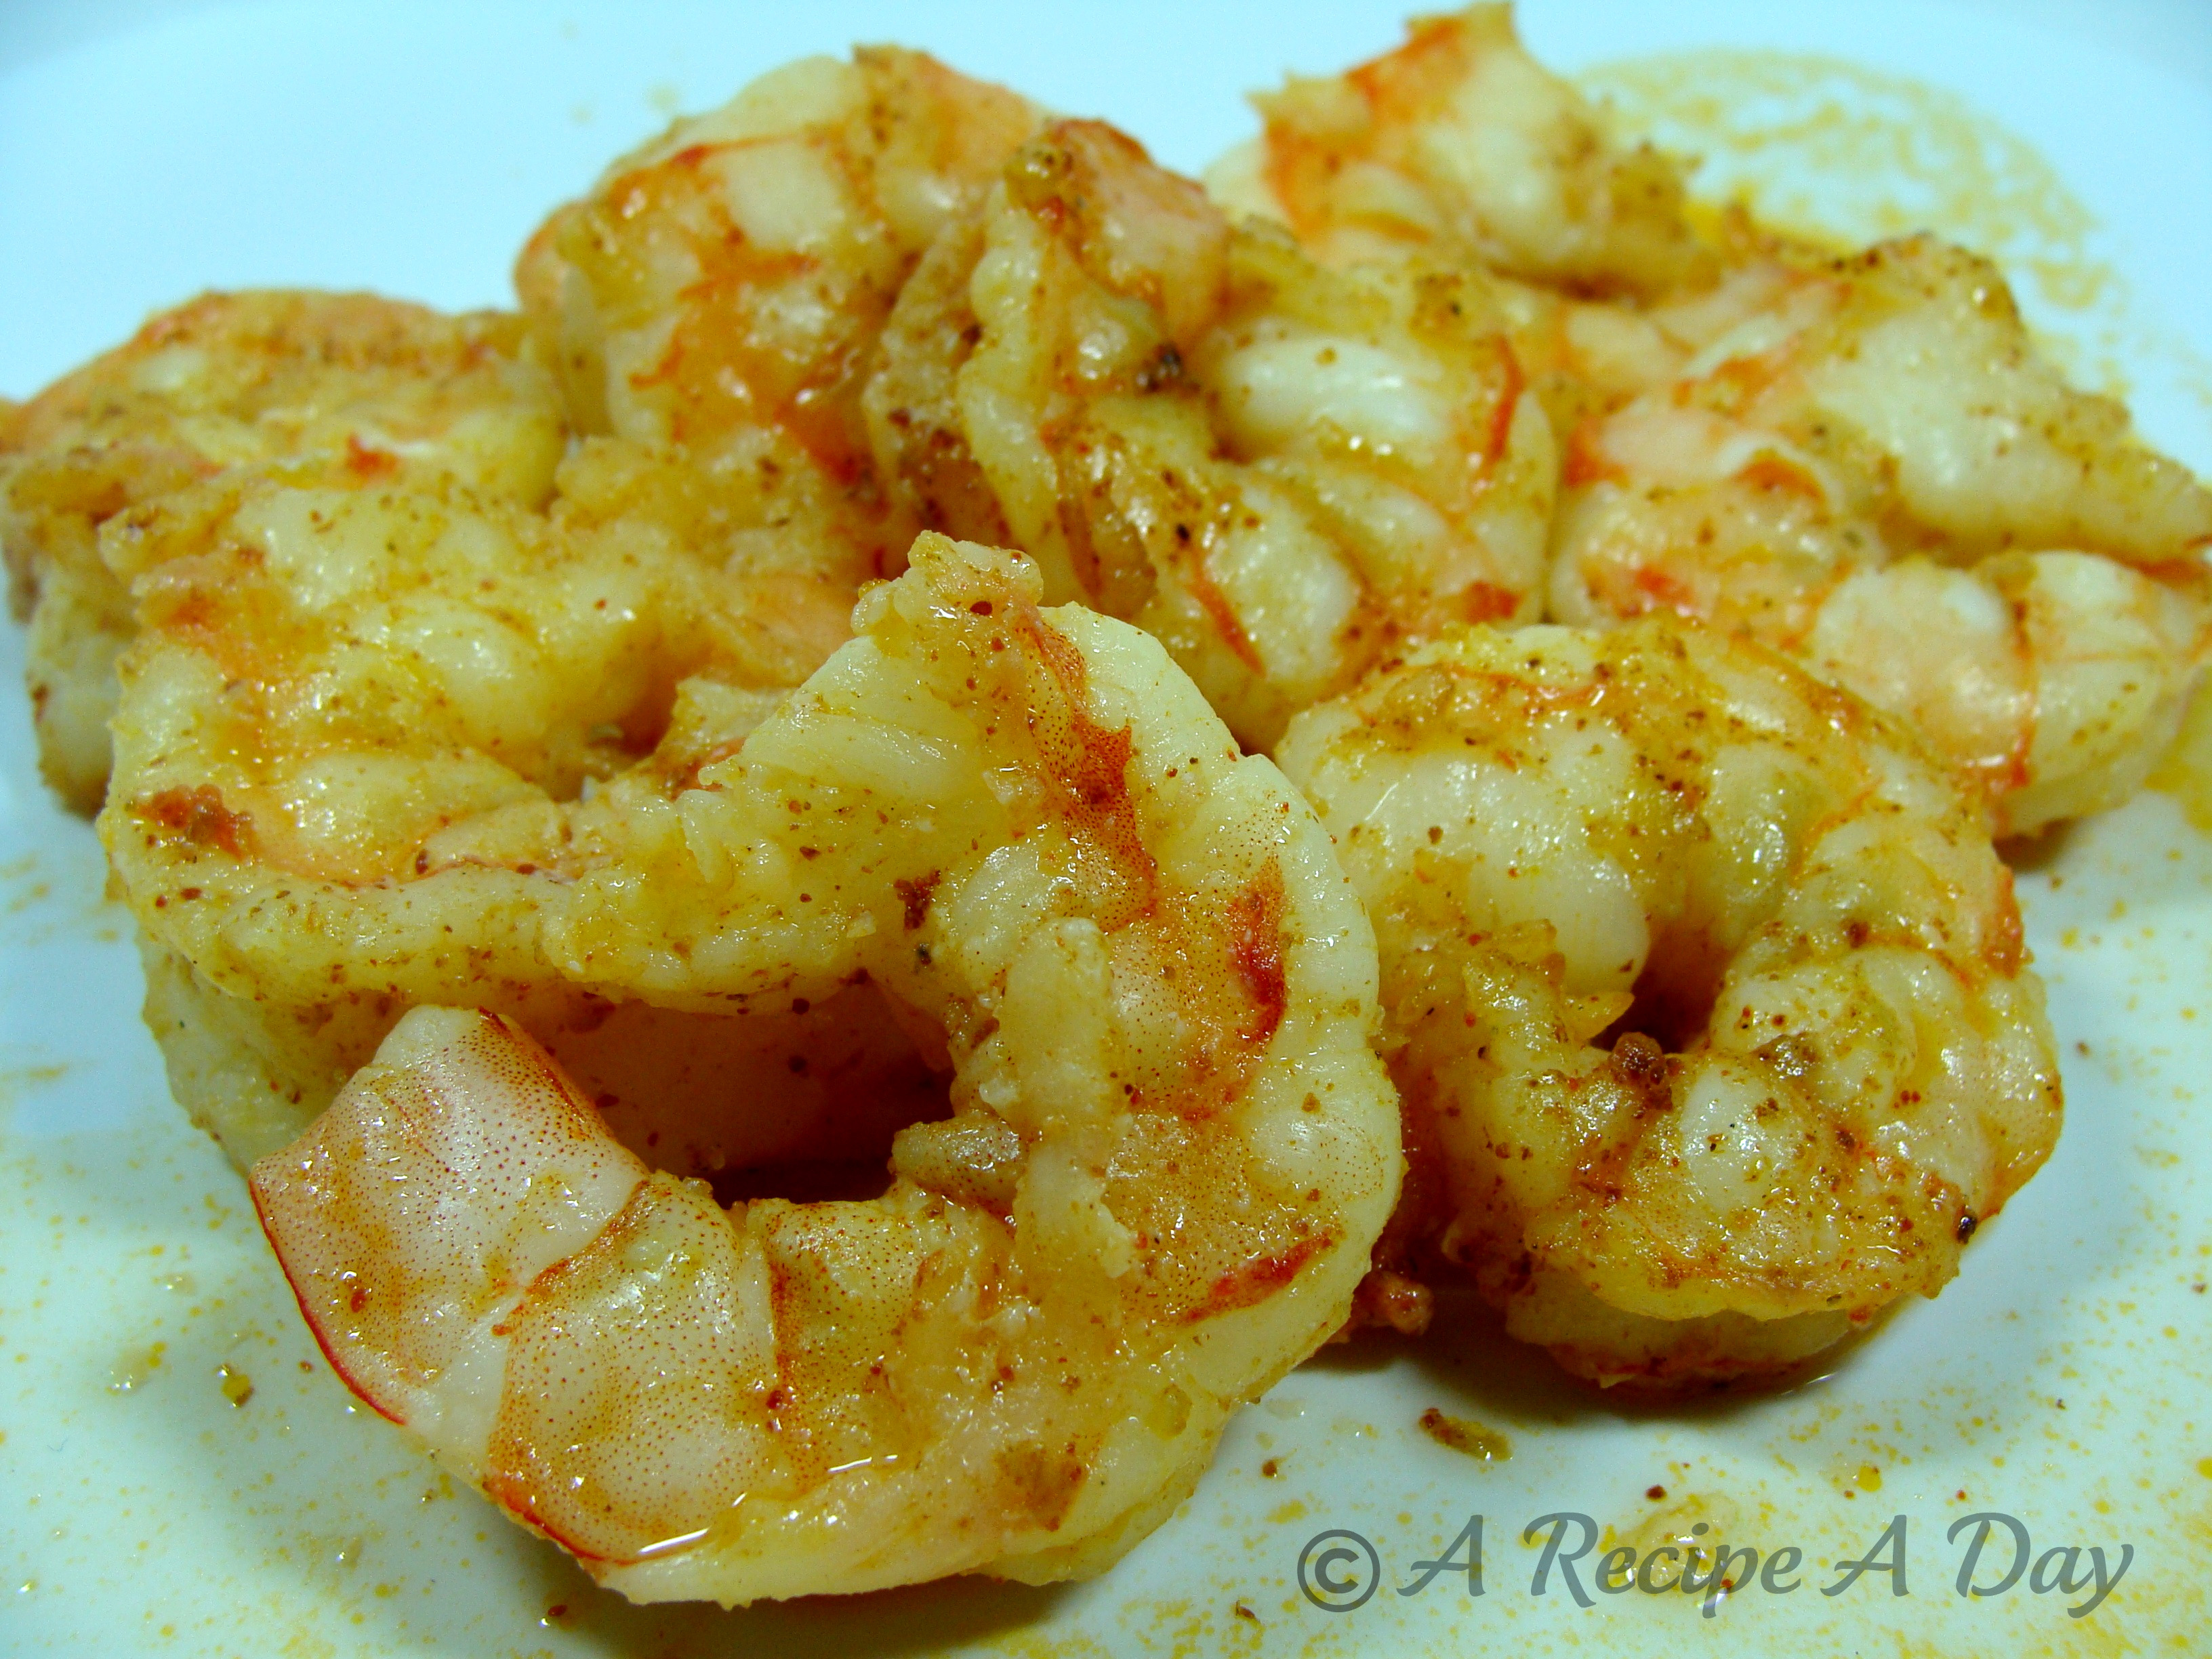 Grilled spicy shrimp recipes